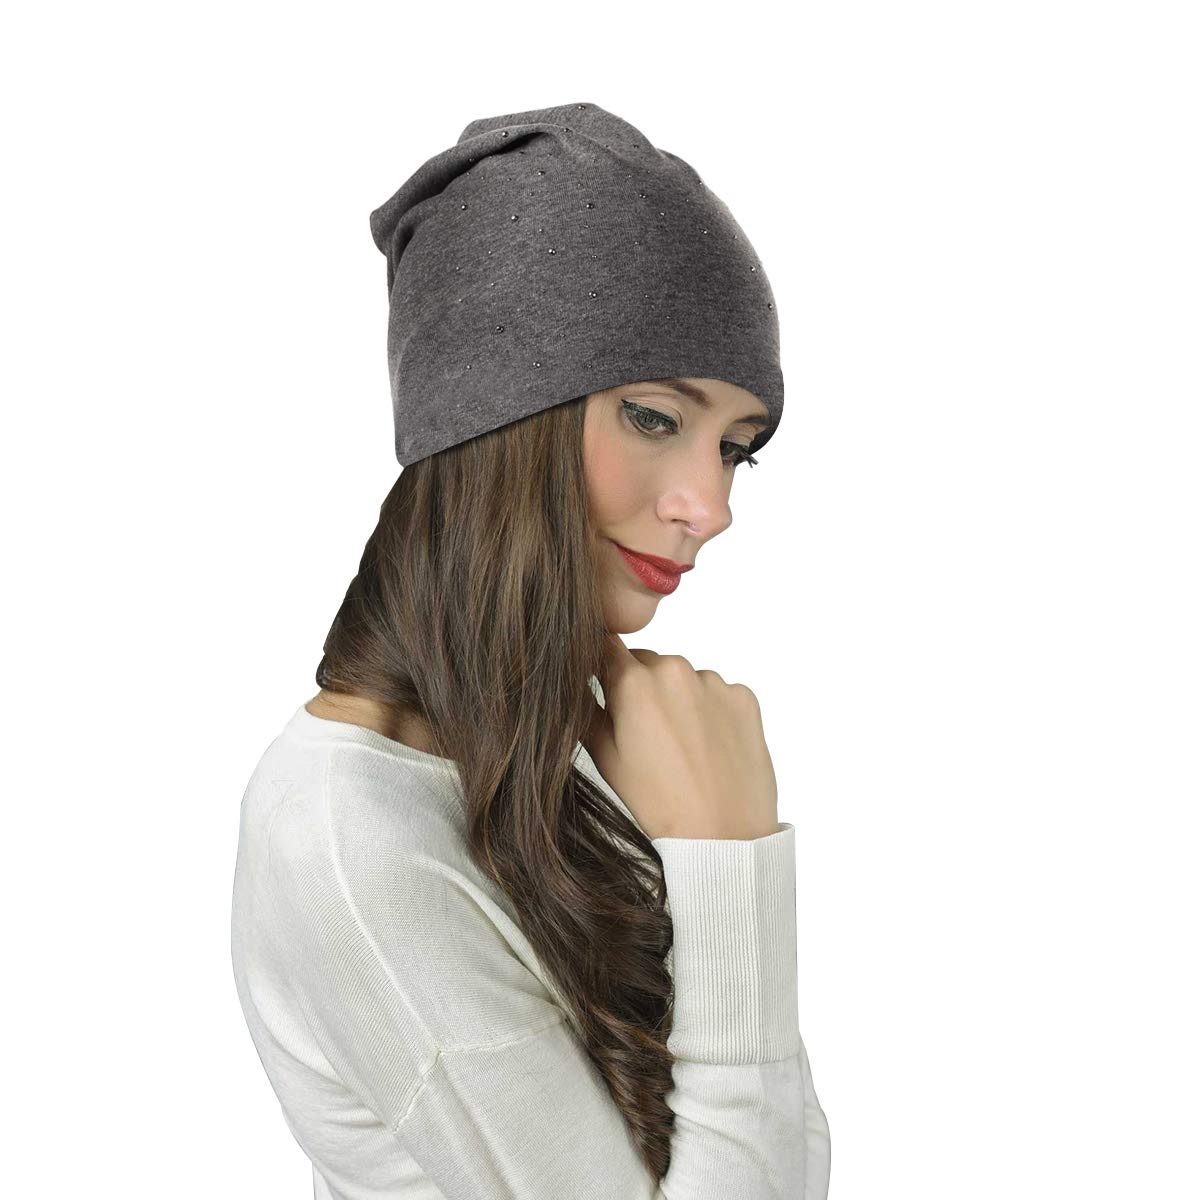 Elastic Long Slouch Beanie Bleswin Unisex Slouchy Beanie with Rhinestones Cotton Soft Beanie For Both Men and Women Warm Lightweight for Summer and Winter